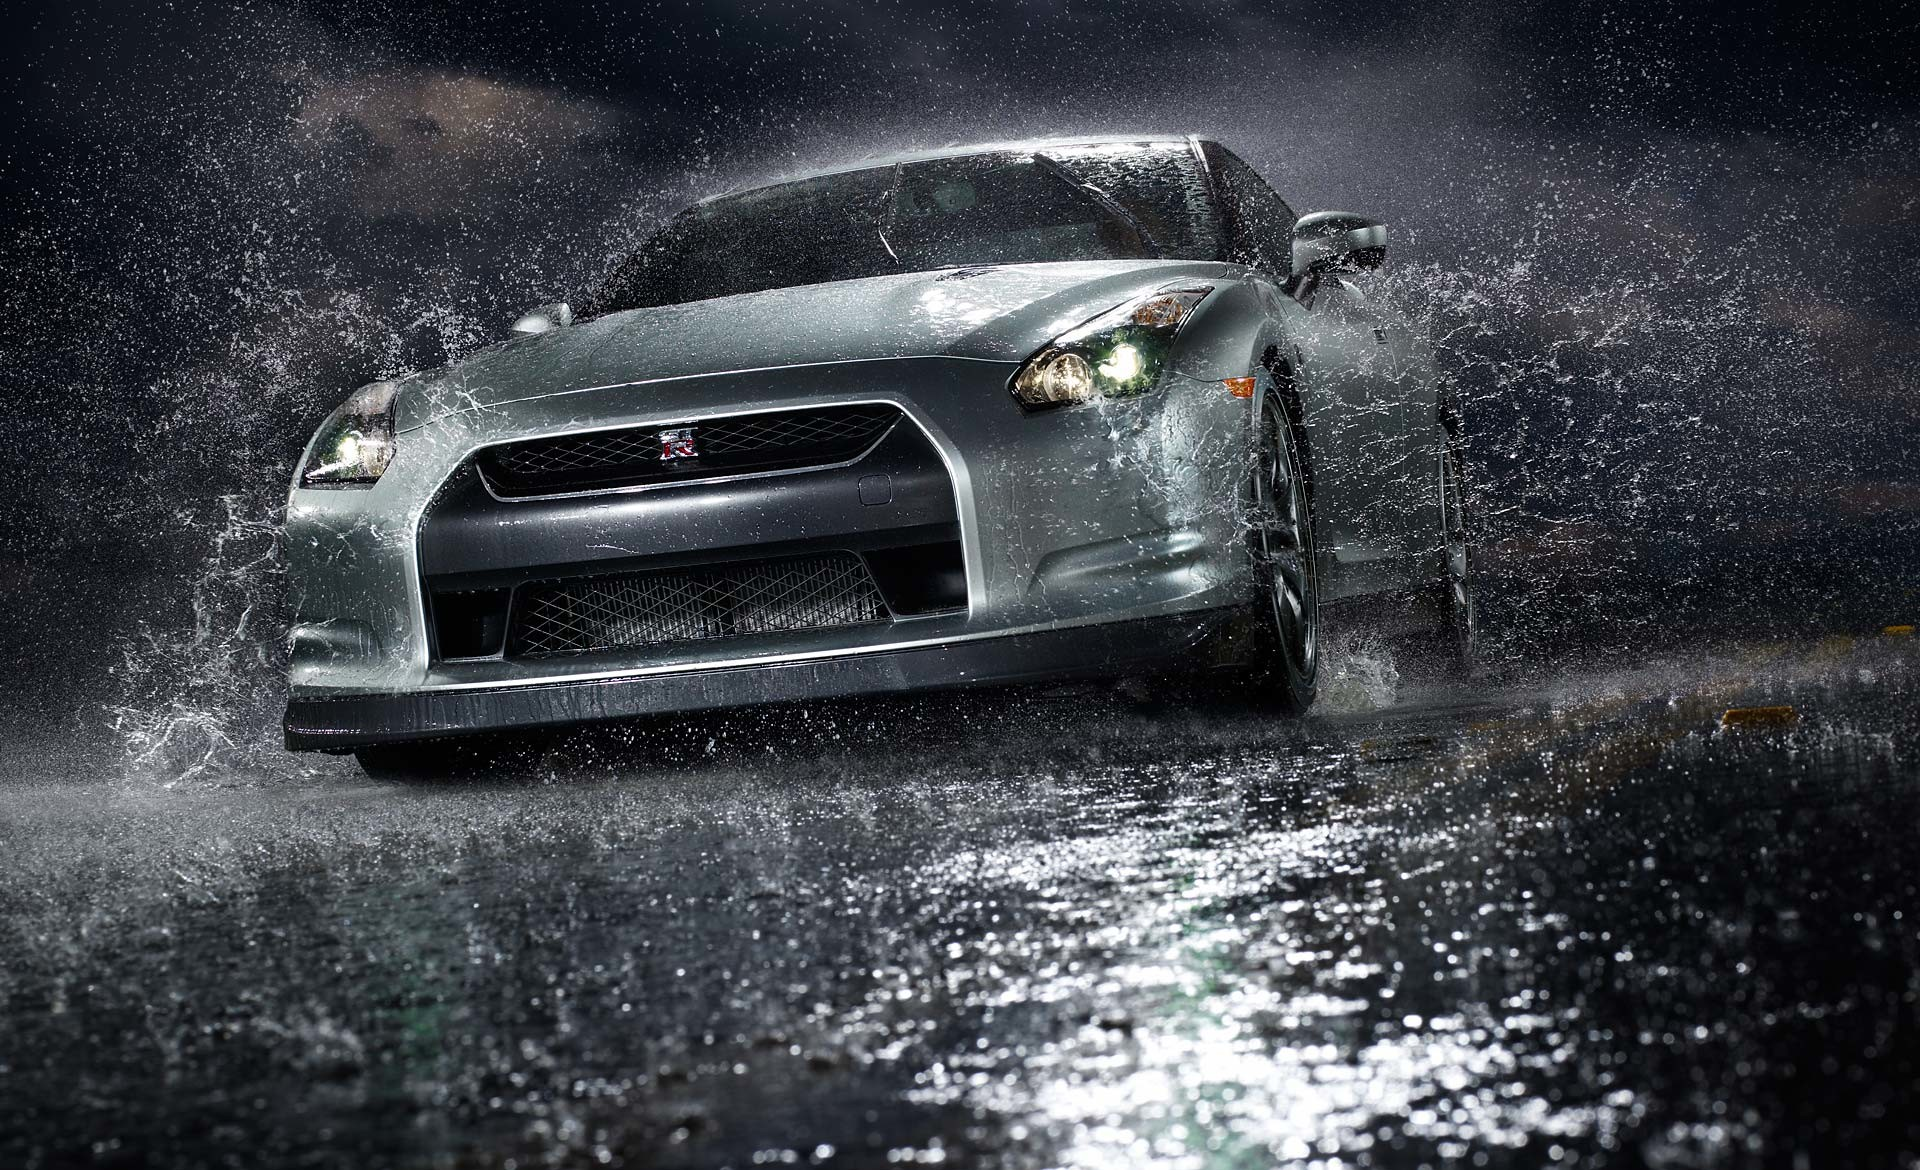 Cars Front Angle View Nissan GT-R Vehicles Water free iPhone or Android  Full HD wallpaper.